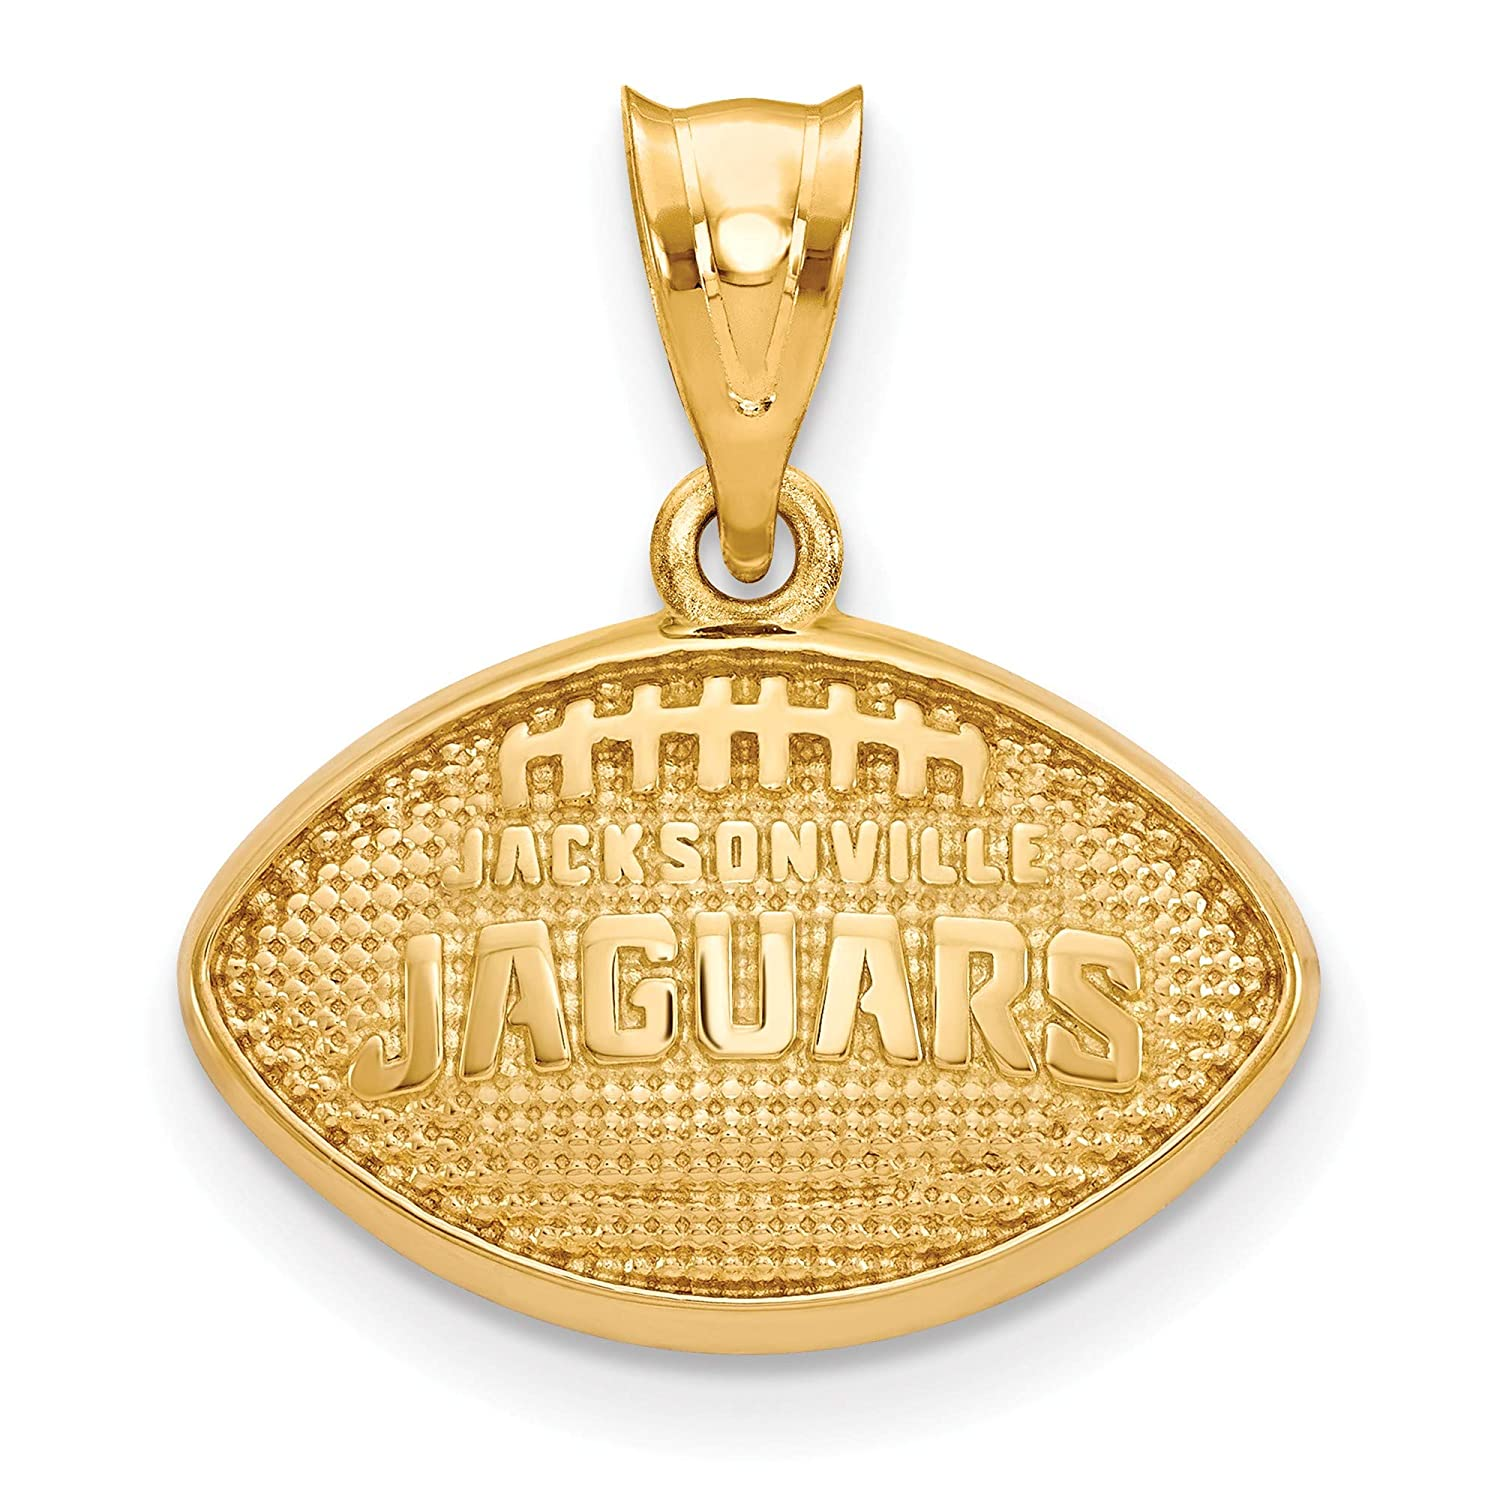 Kira Riley Gold Plated Jacksonville Jaguars Football Pendant for Chains and Necklaces